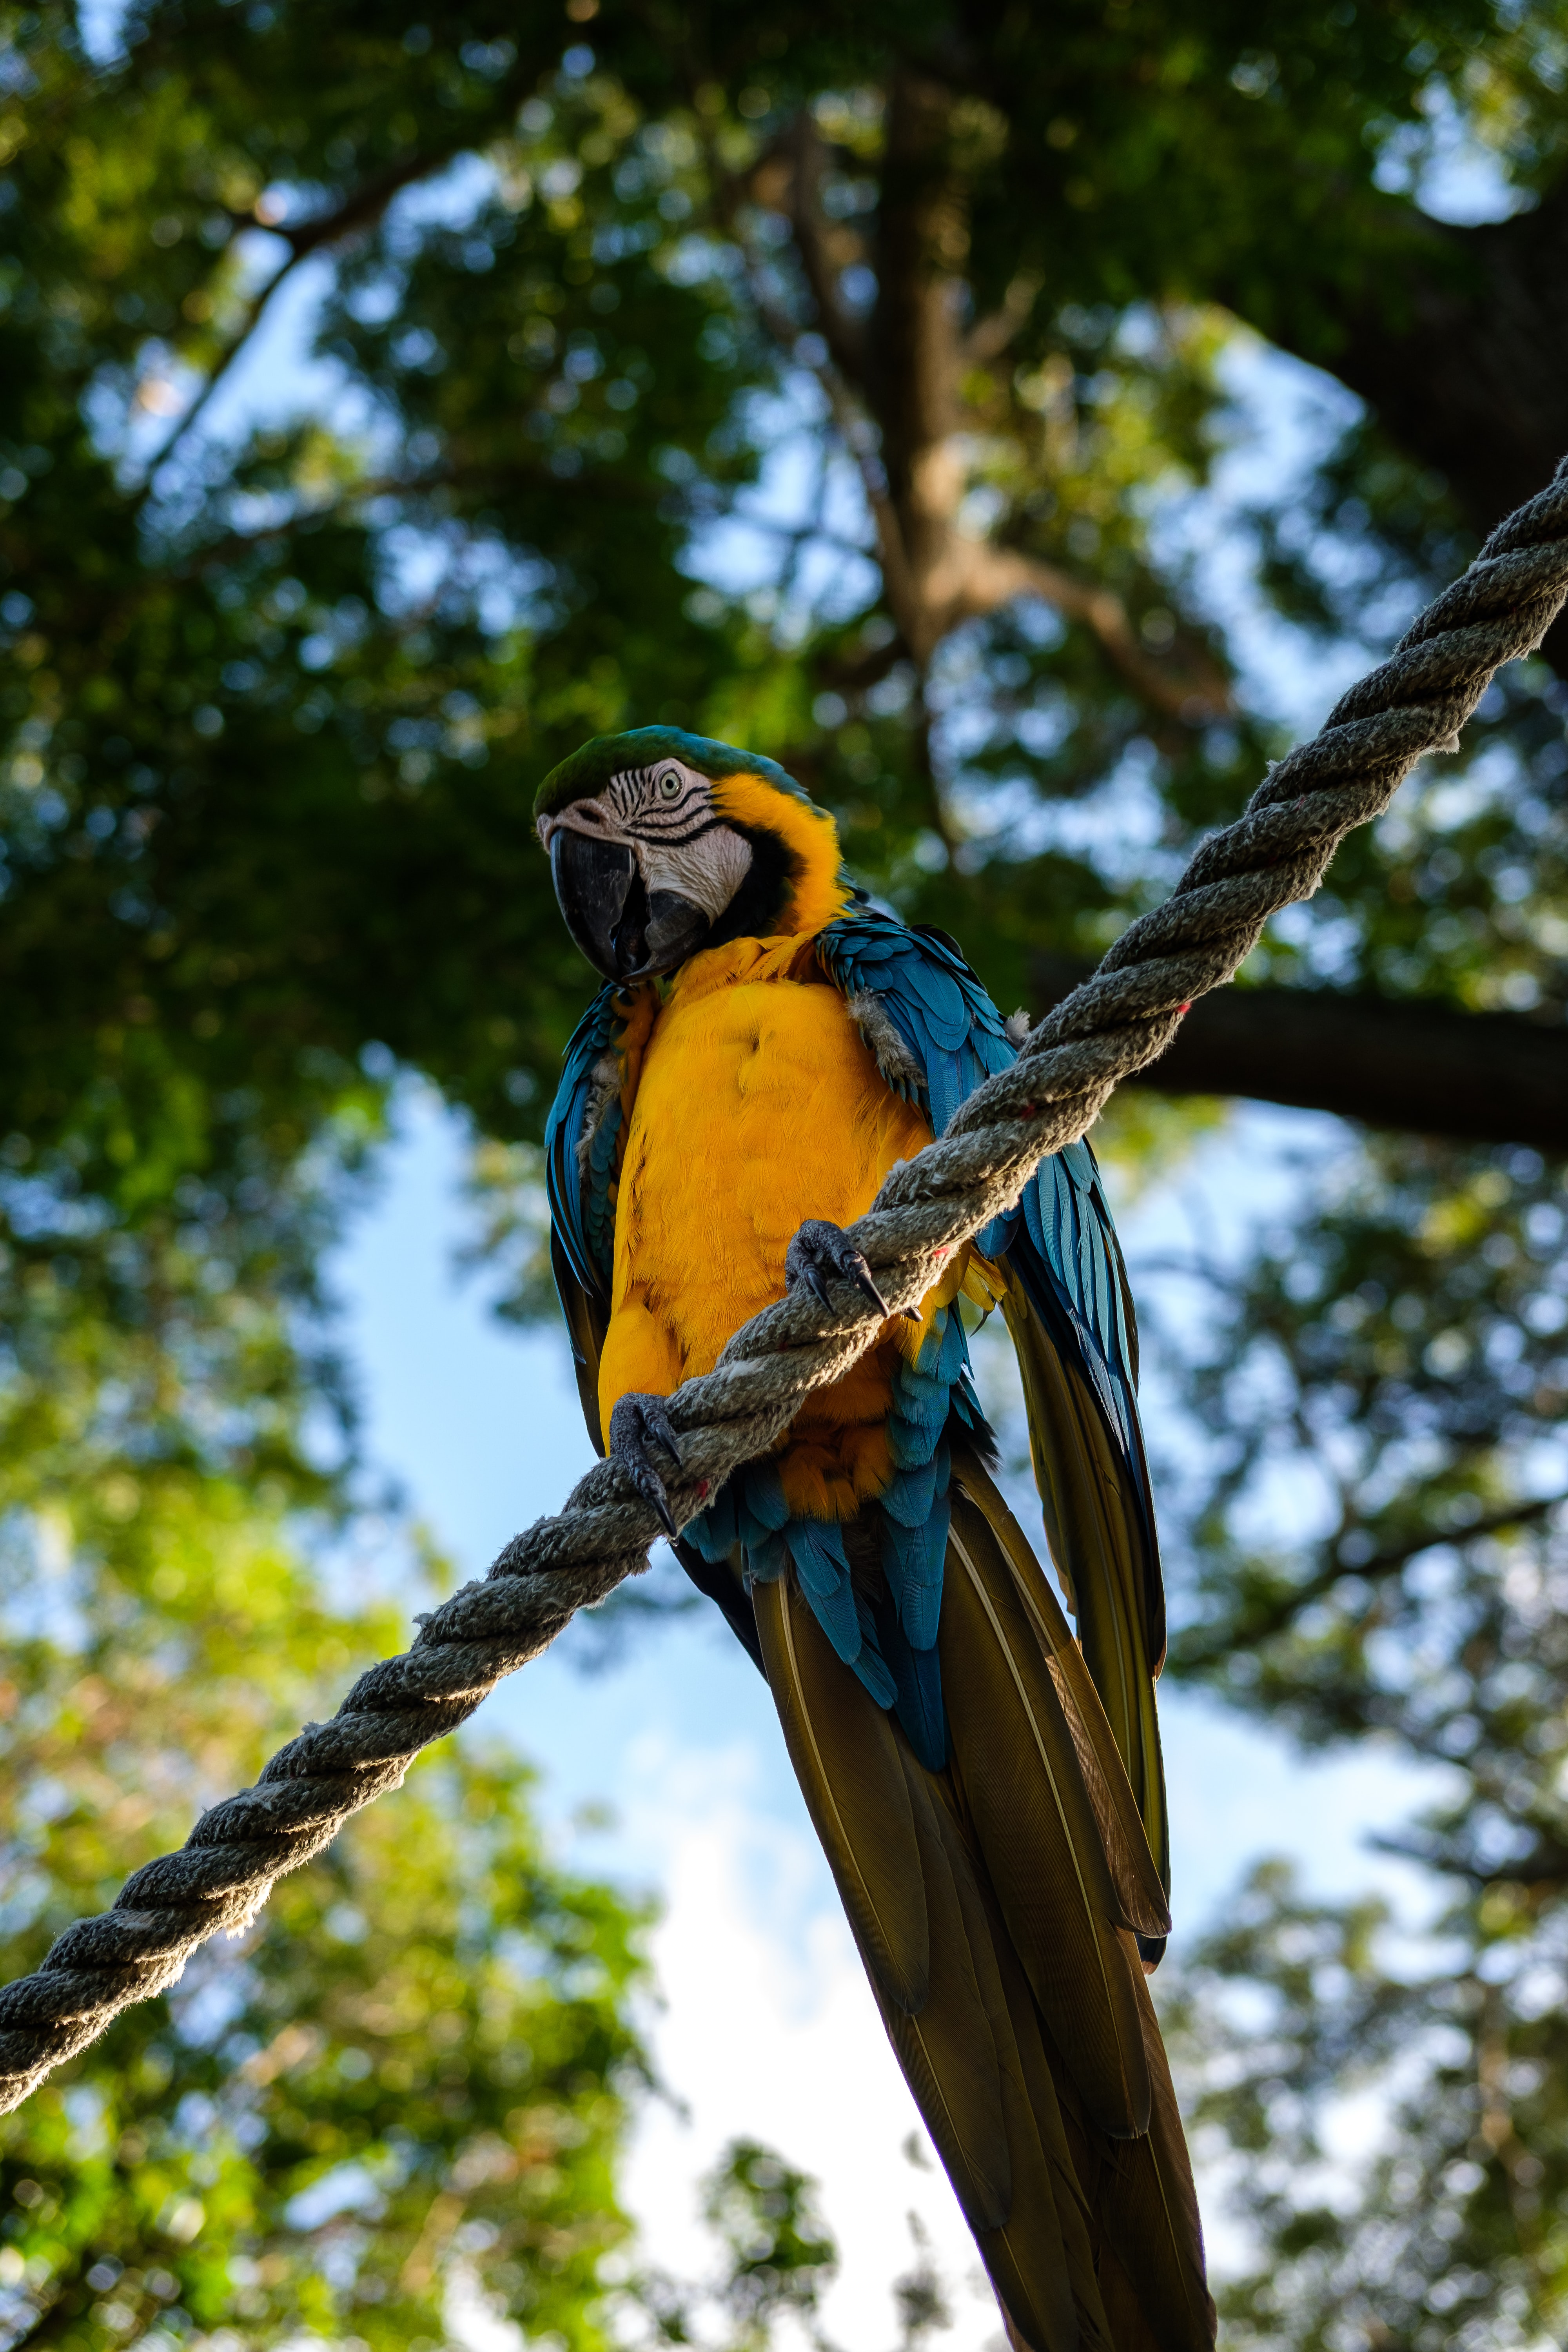 yellow and blue parrot perching on brown rope